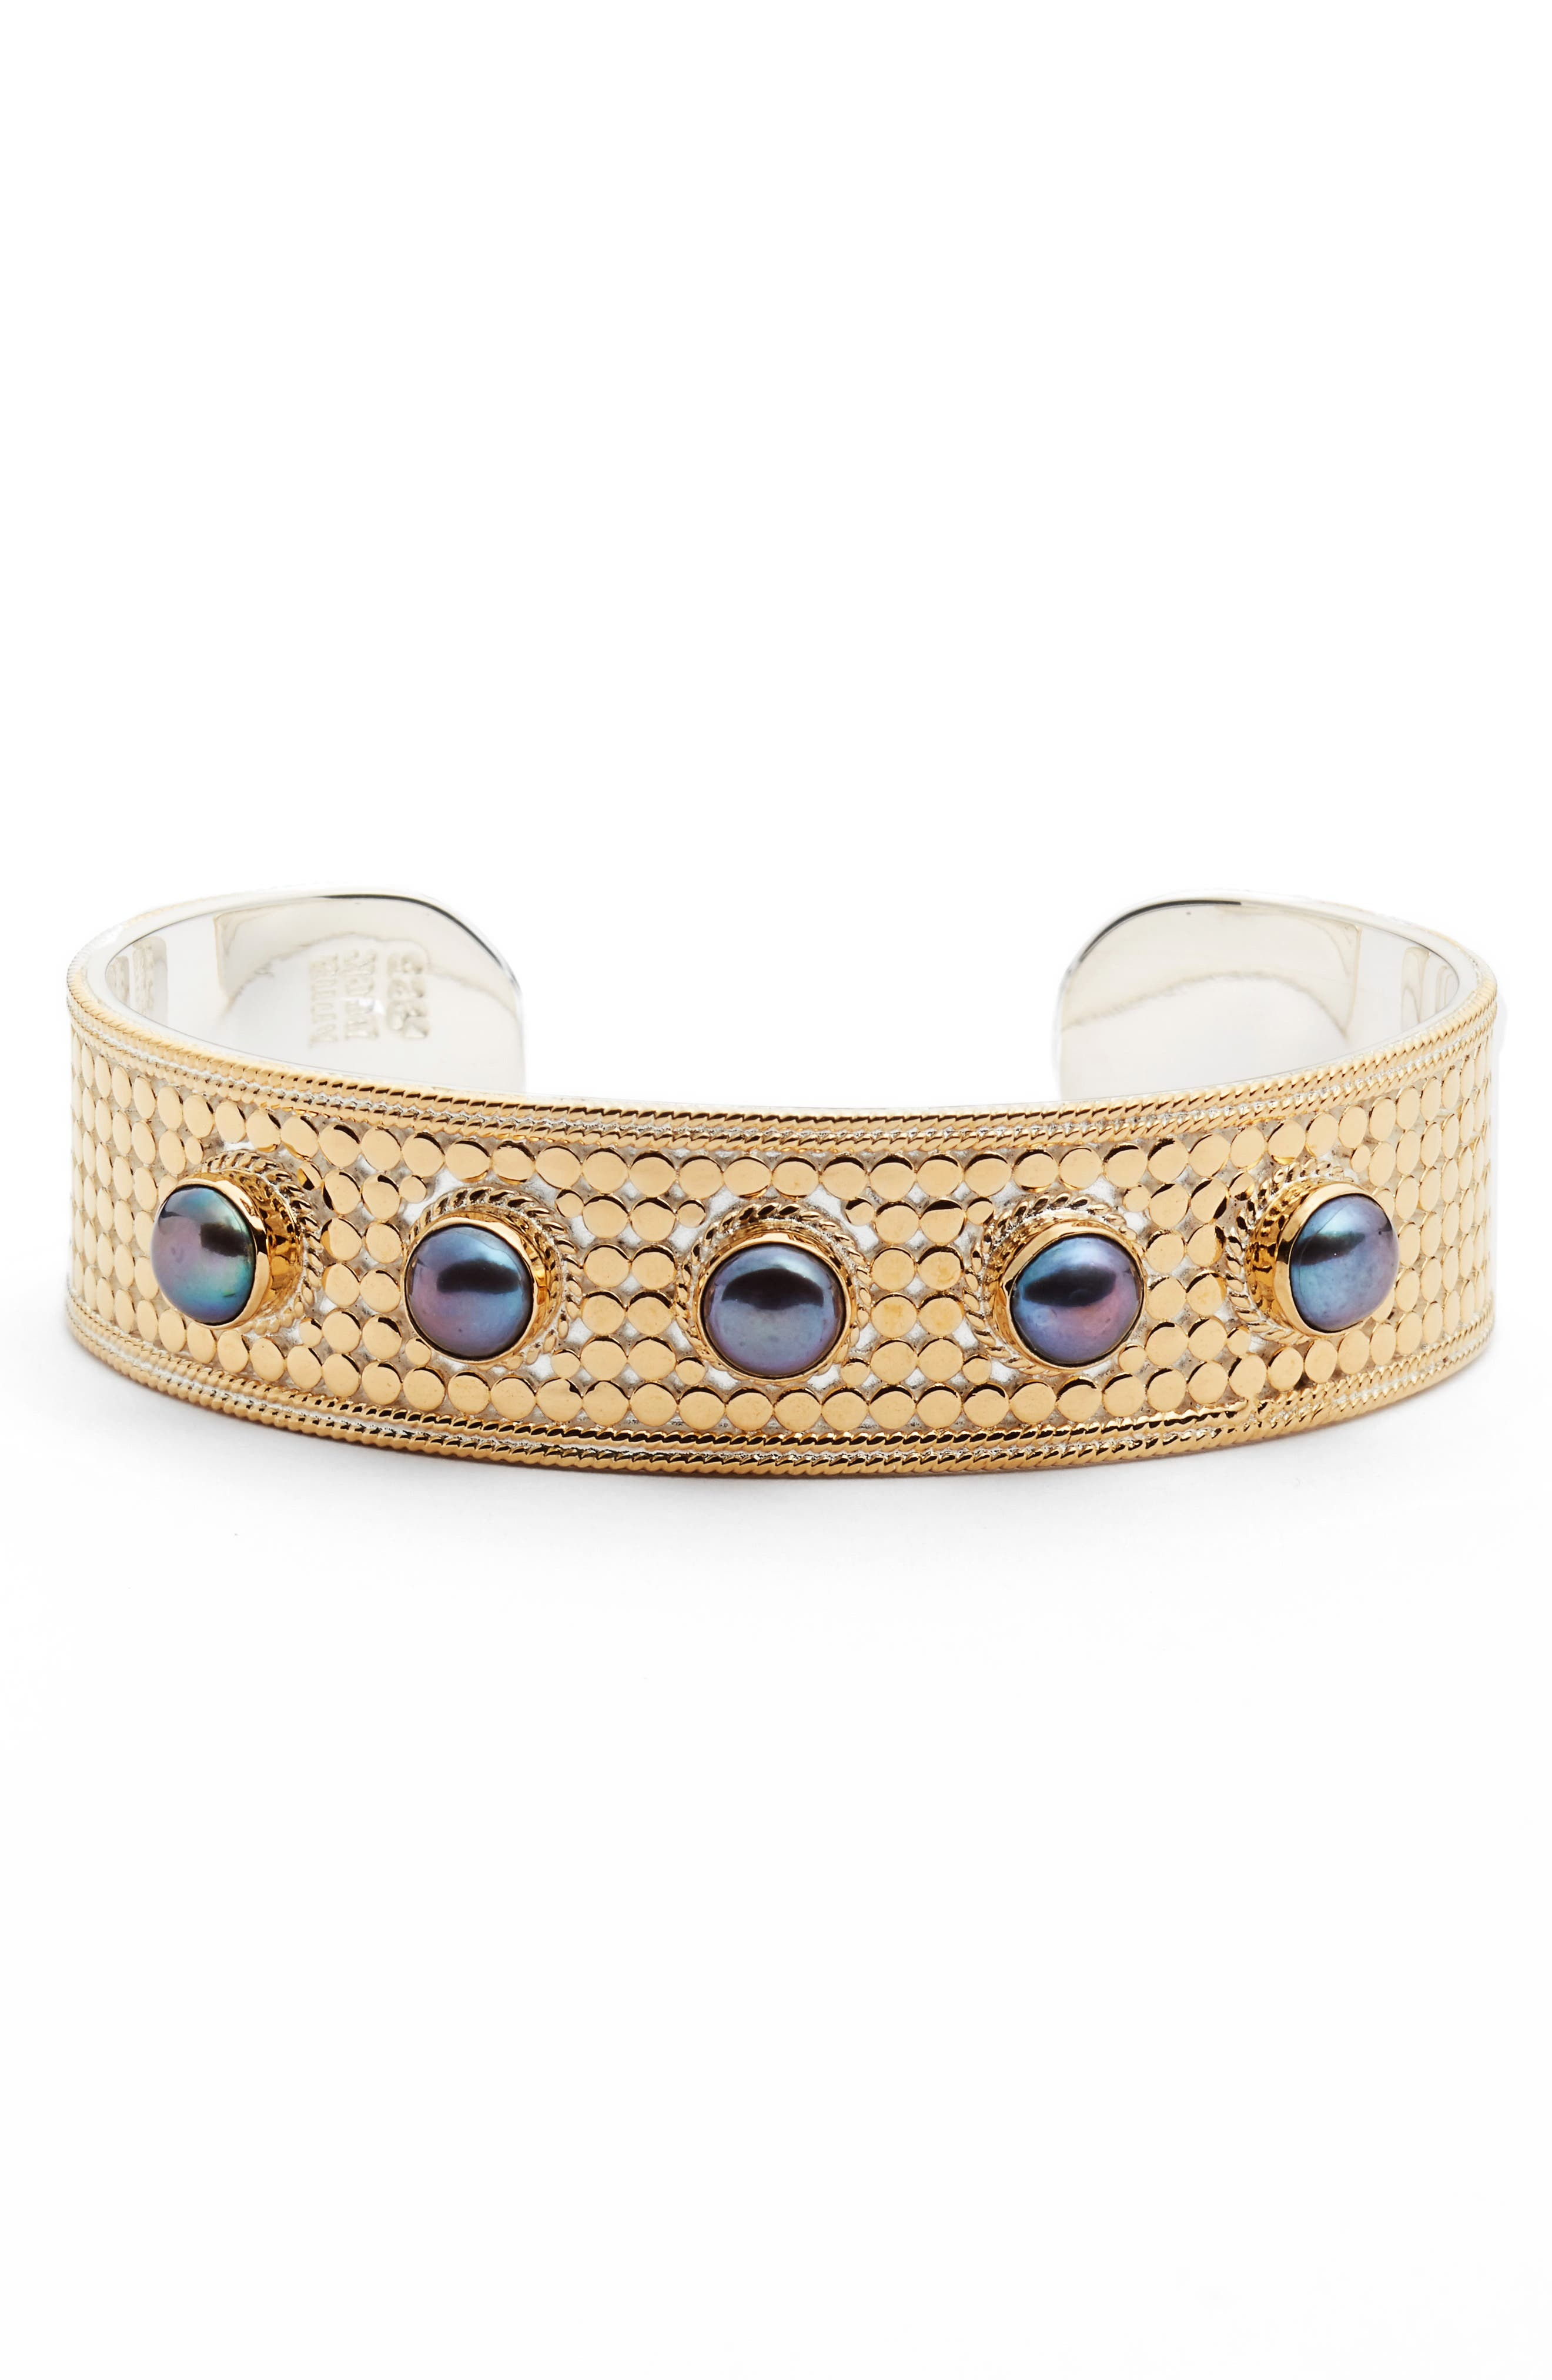 Genuine Blue Pearl Multistone Cuff,                         Main,                         color, GOLD/ BLUE PEARL